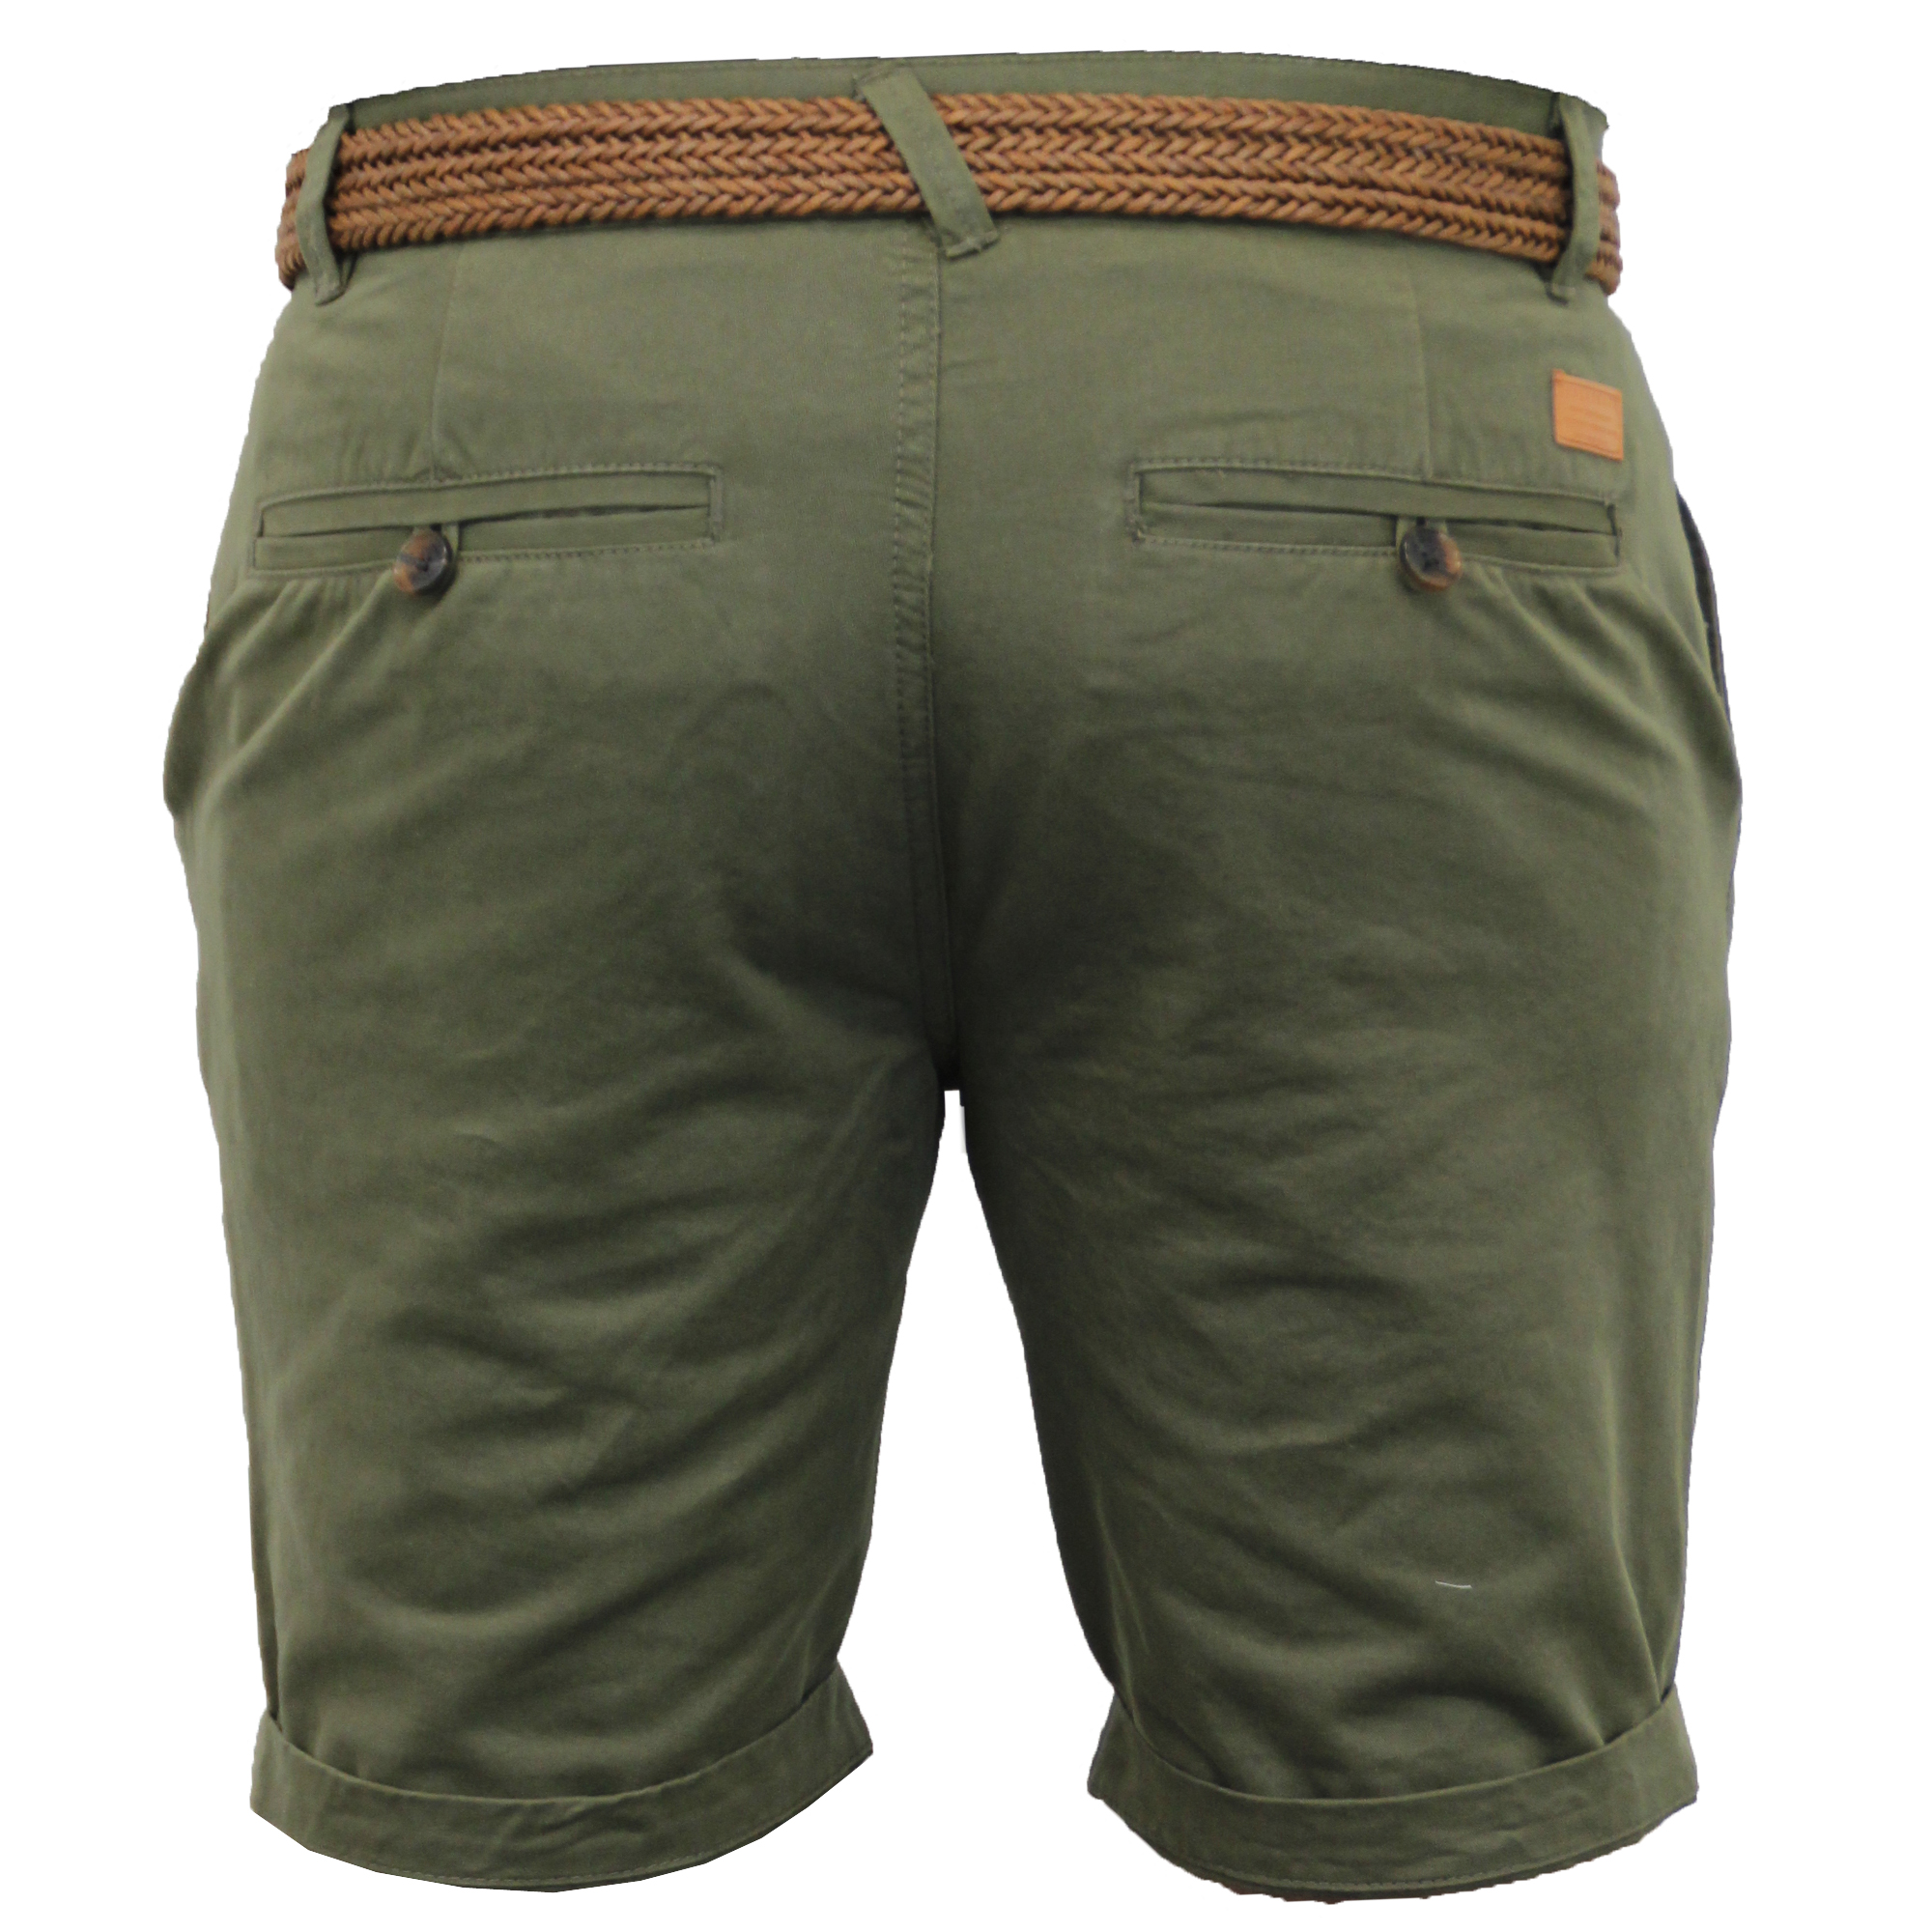 Mens-Chino-Shorts-Threadbare-Cotton-Oxford-Belted-Loyalty-amp-Faith-Seven-Series thumbnail 14